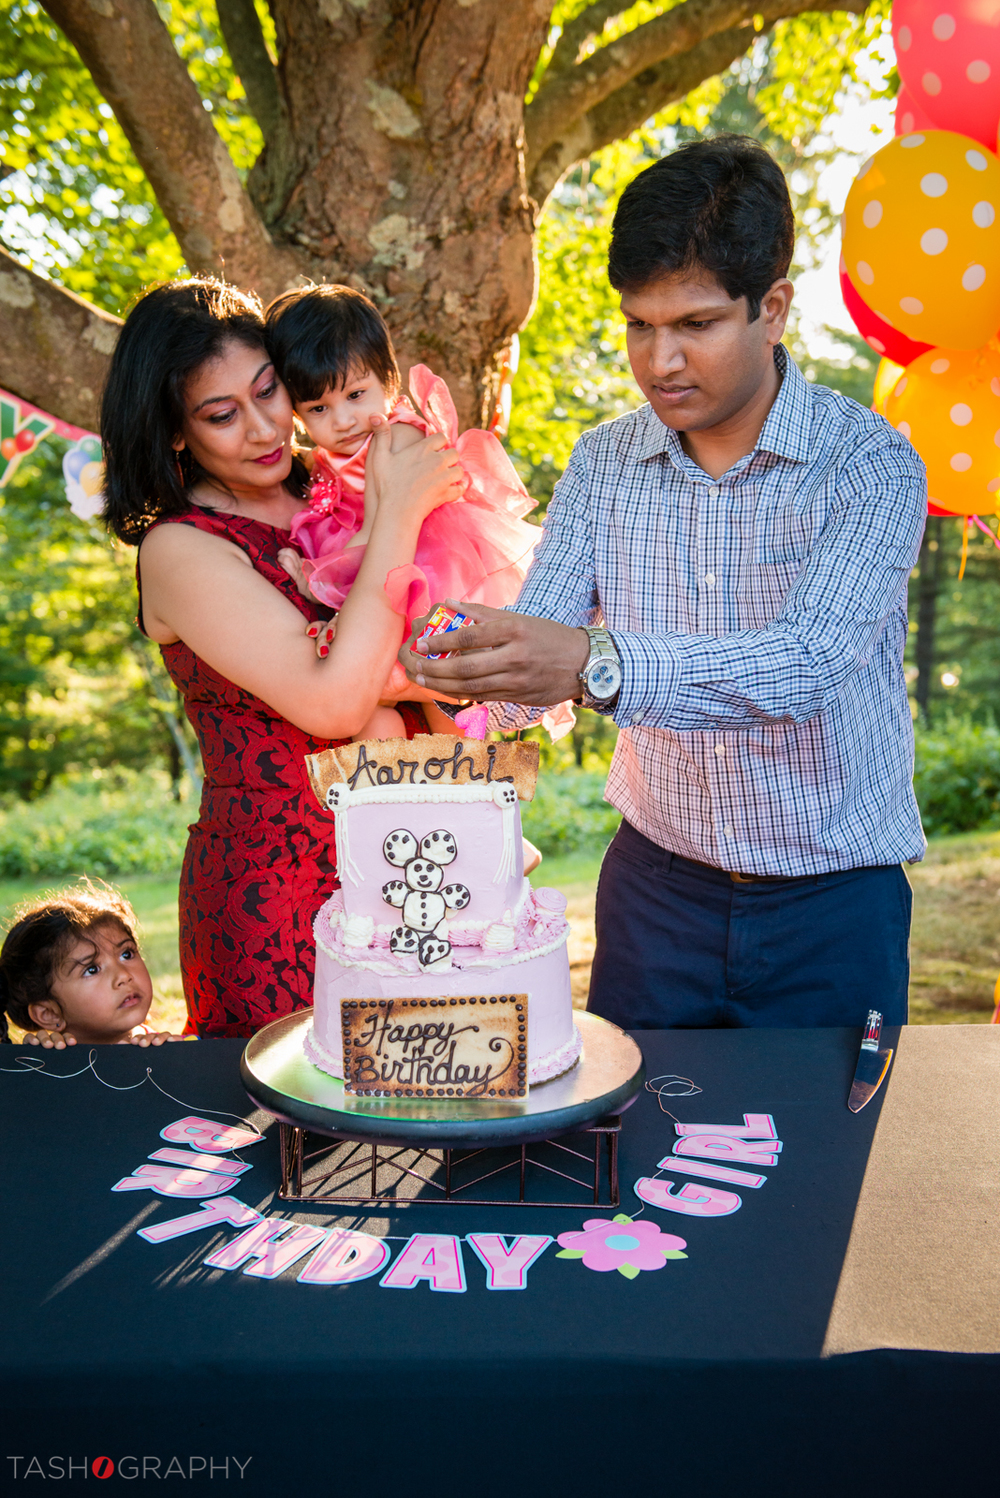 Aarohi-First-Bday-Web-24.jpg